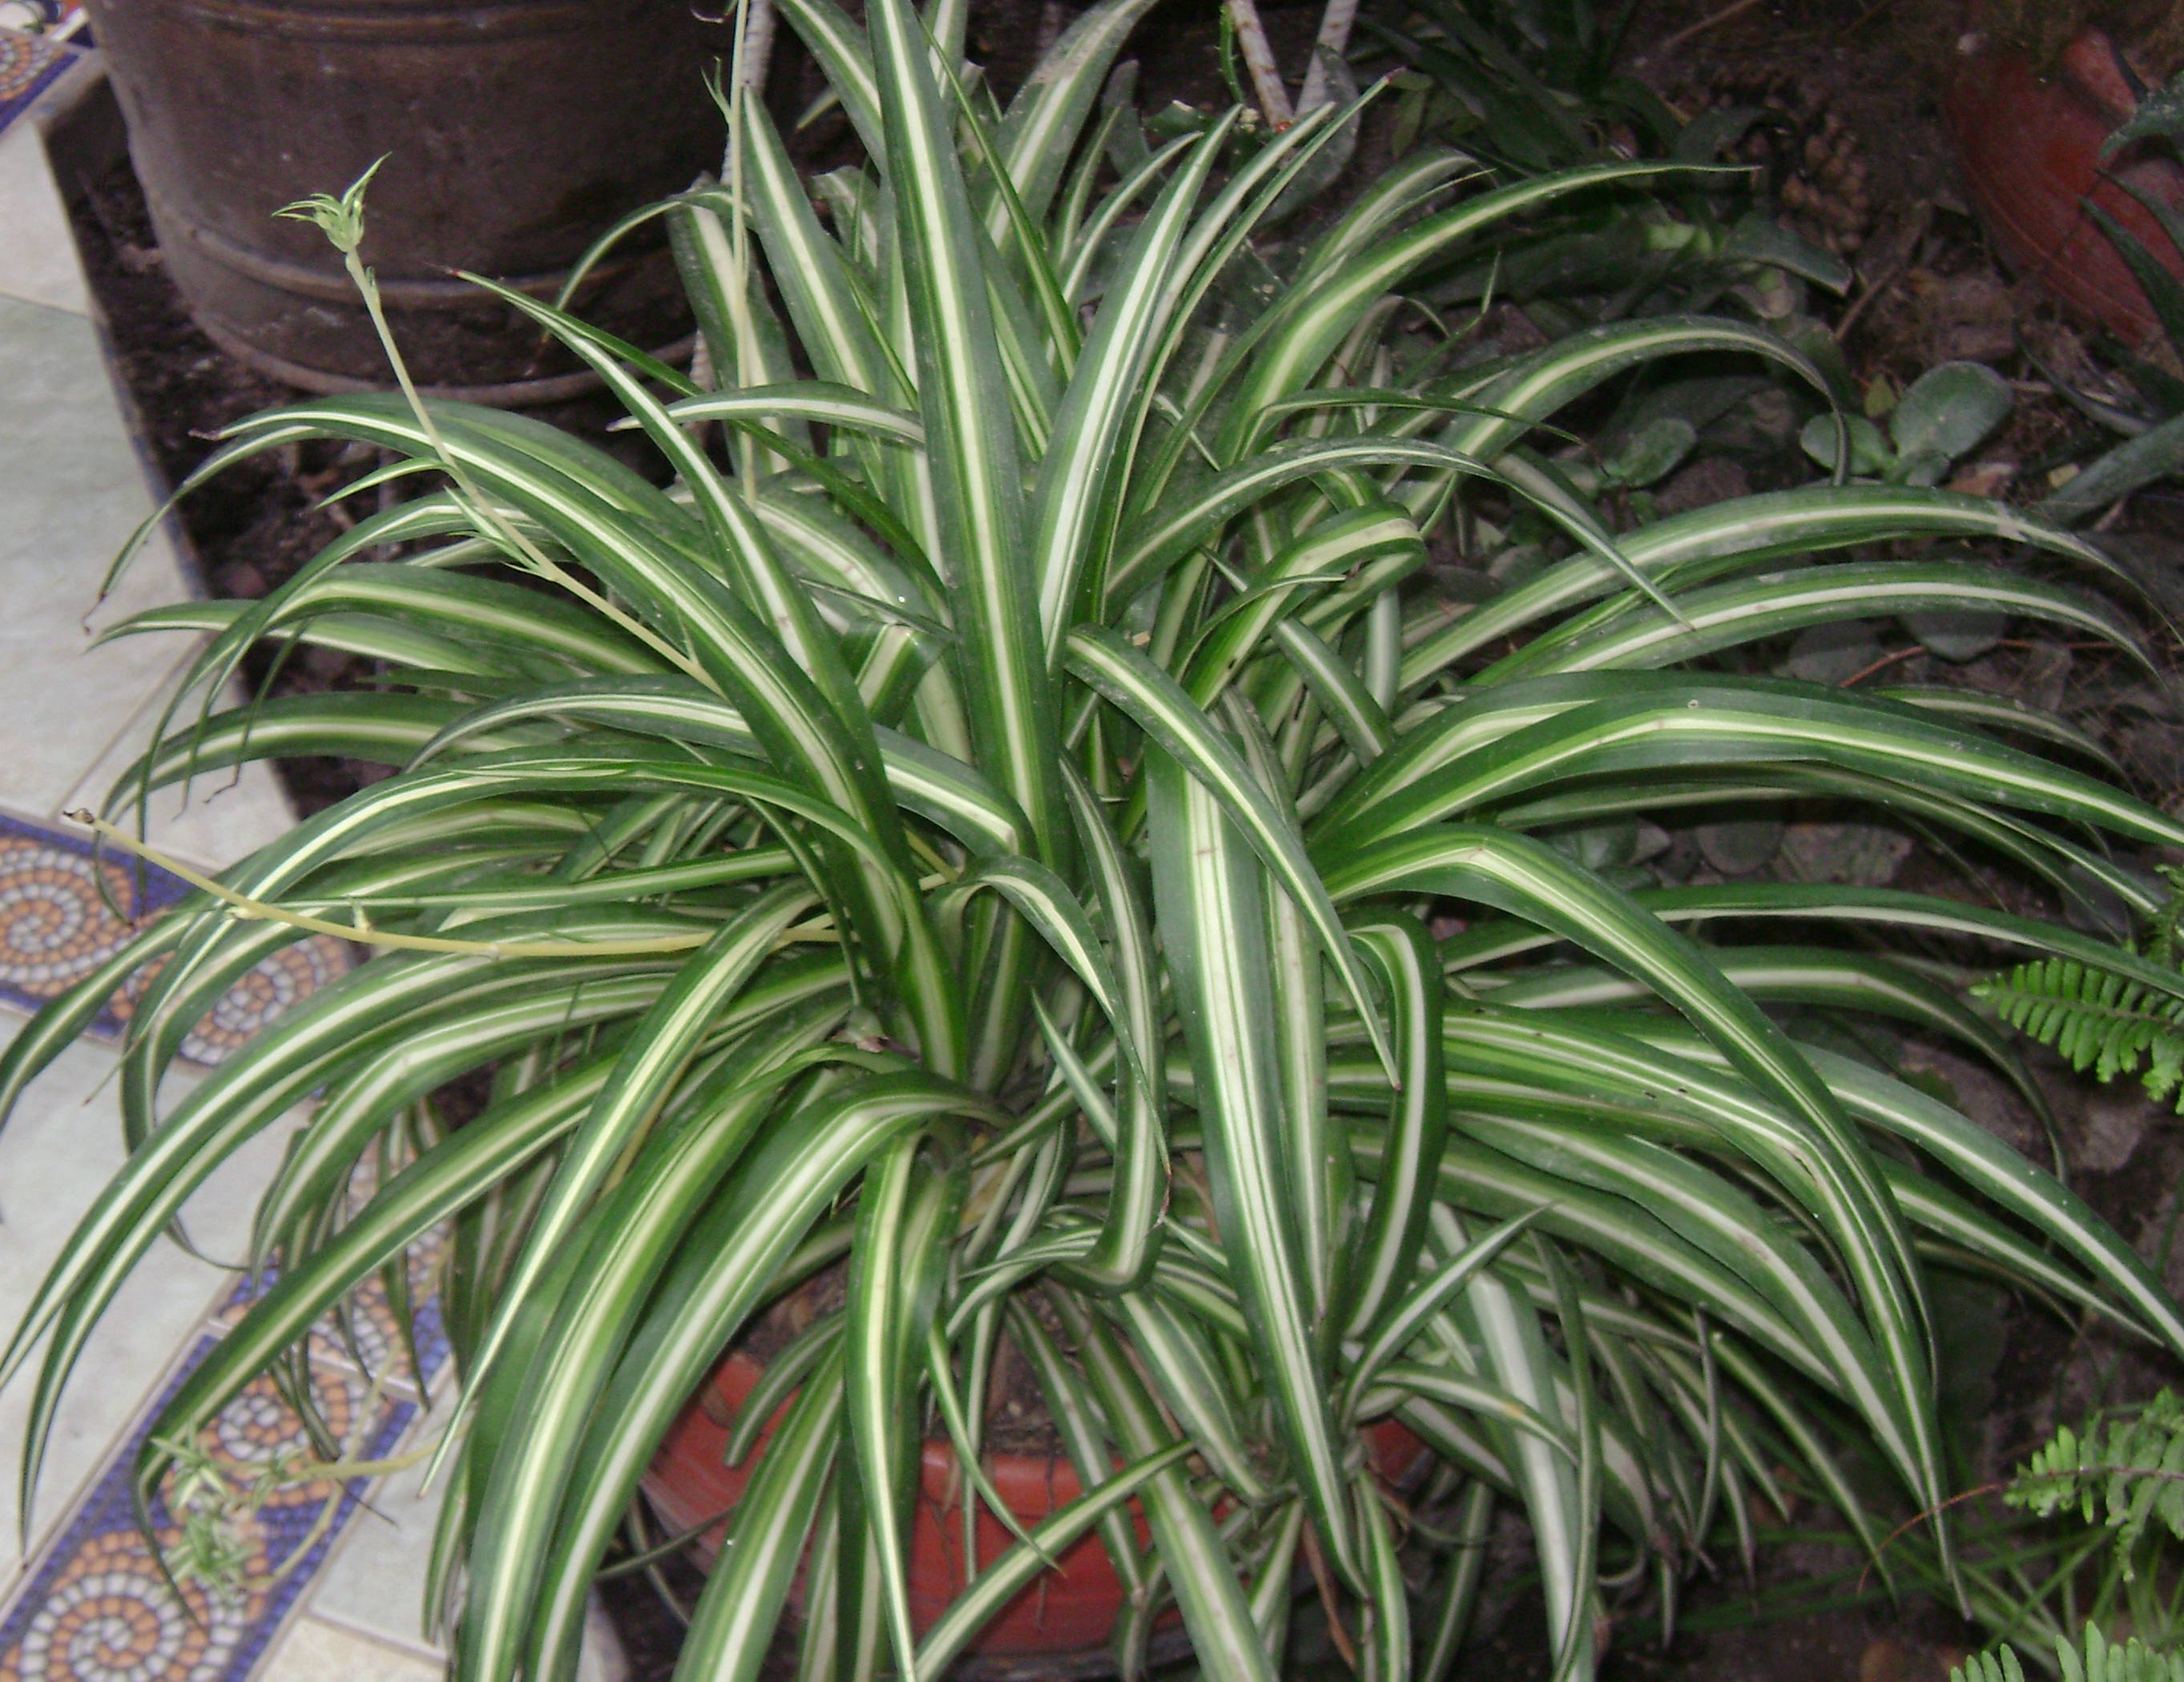 Chlorophytum comosum - Wikipedia on house plant support, house plant diagnosis, house plant lighting, house plant safety, house plant maintenance, house plant room, house plant marketing, house plant construction, house plant texture, house plant people, house plant design, house plant scale, house plant search, house plant identification, house plant benefits,